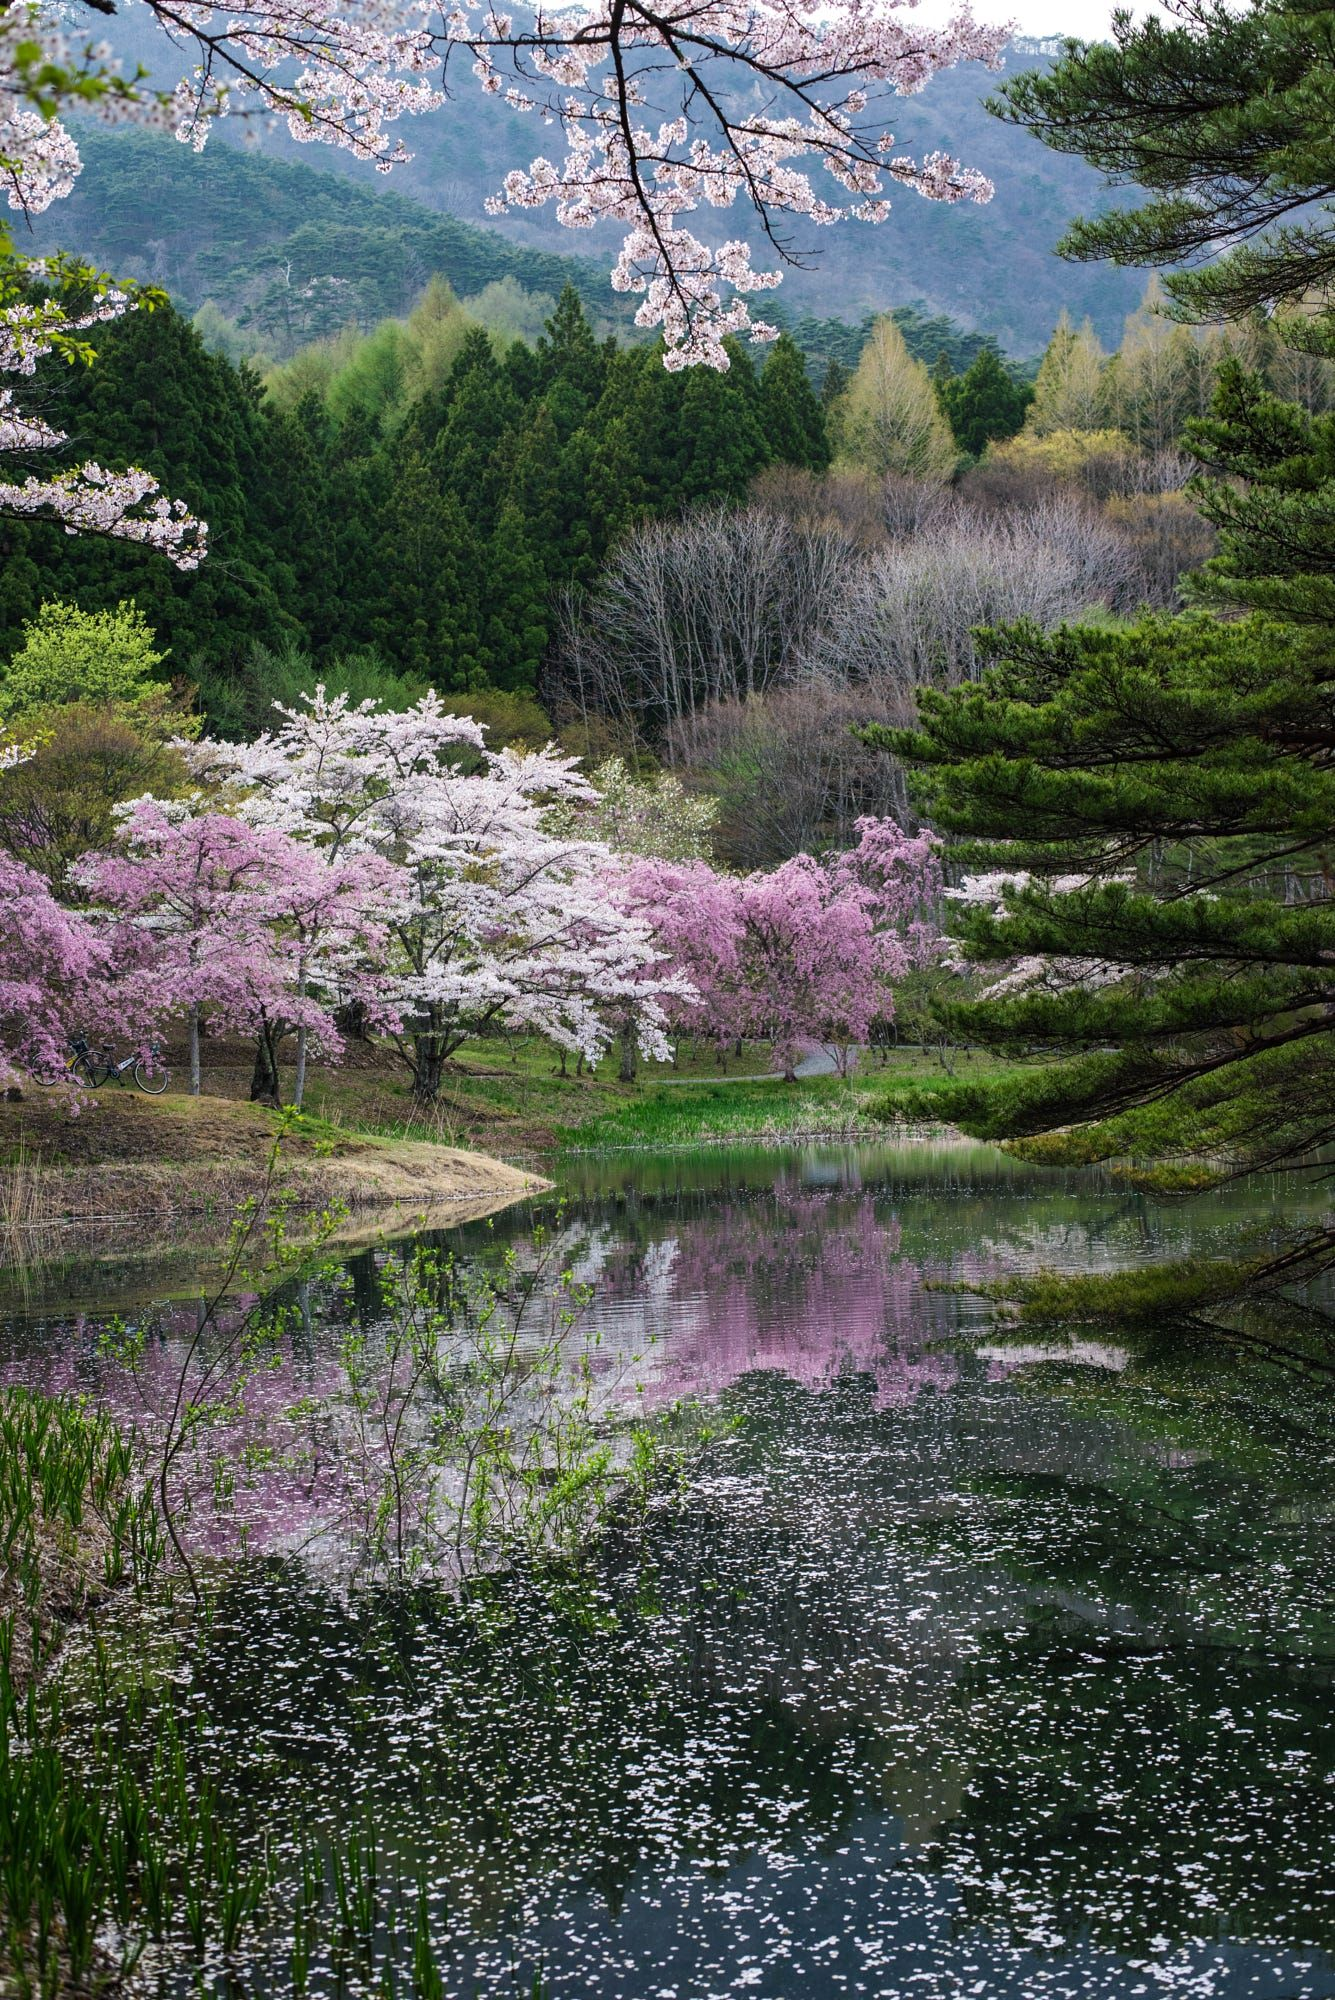 This Is Spring Of Japan Clear Pink Cherry Blossoms Are Blooming In